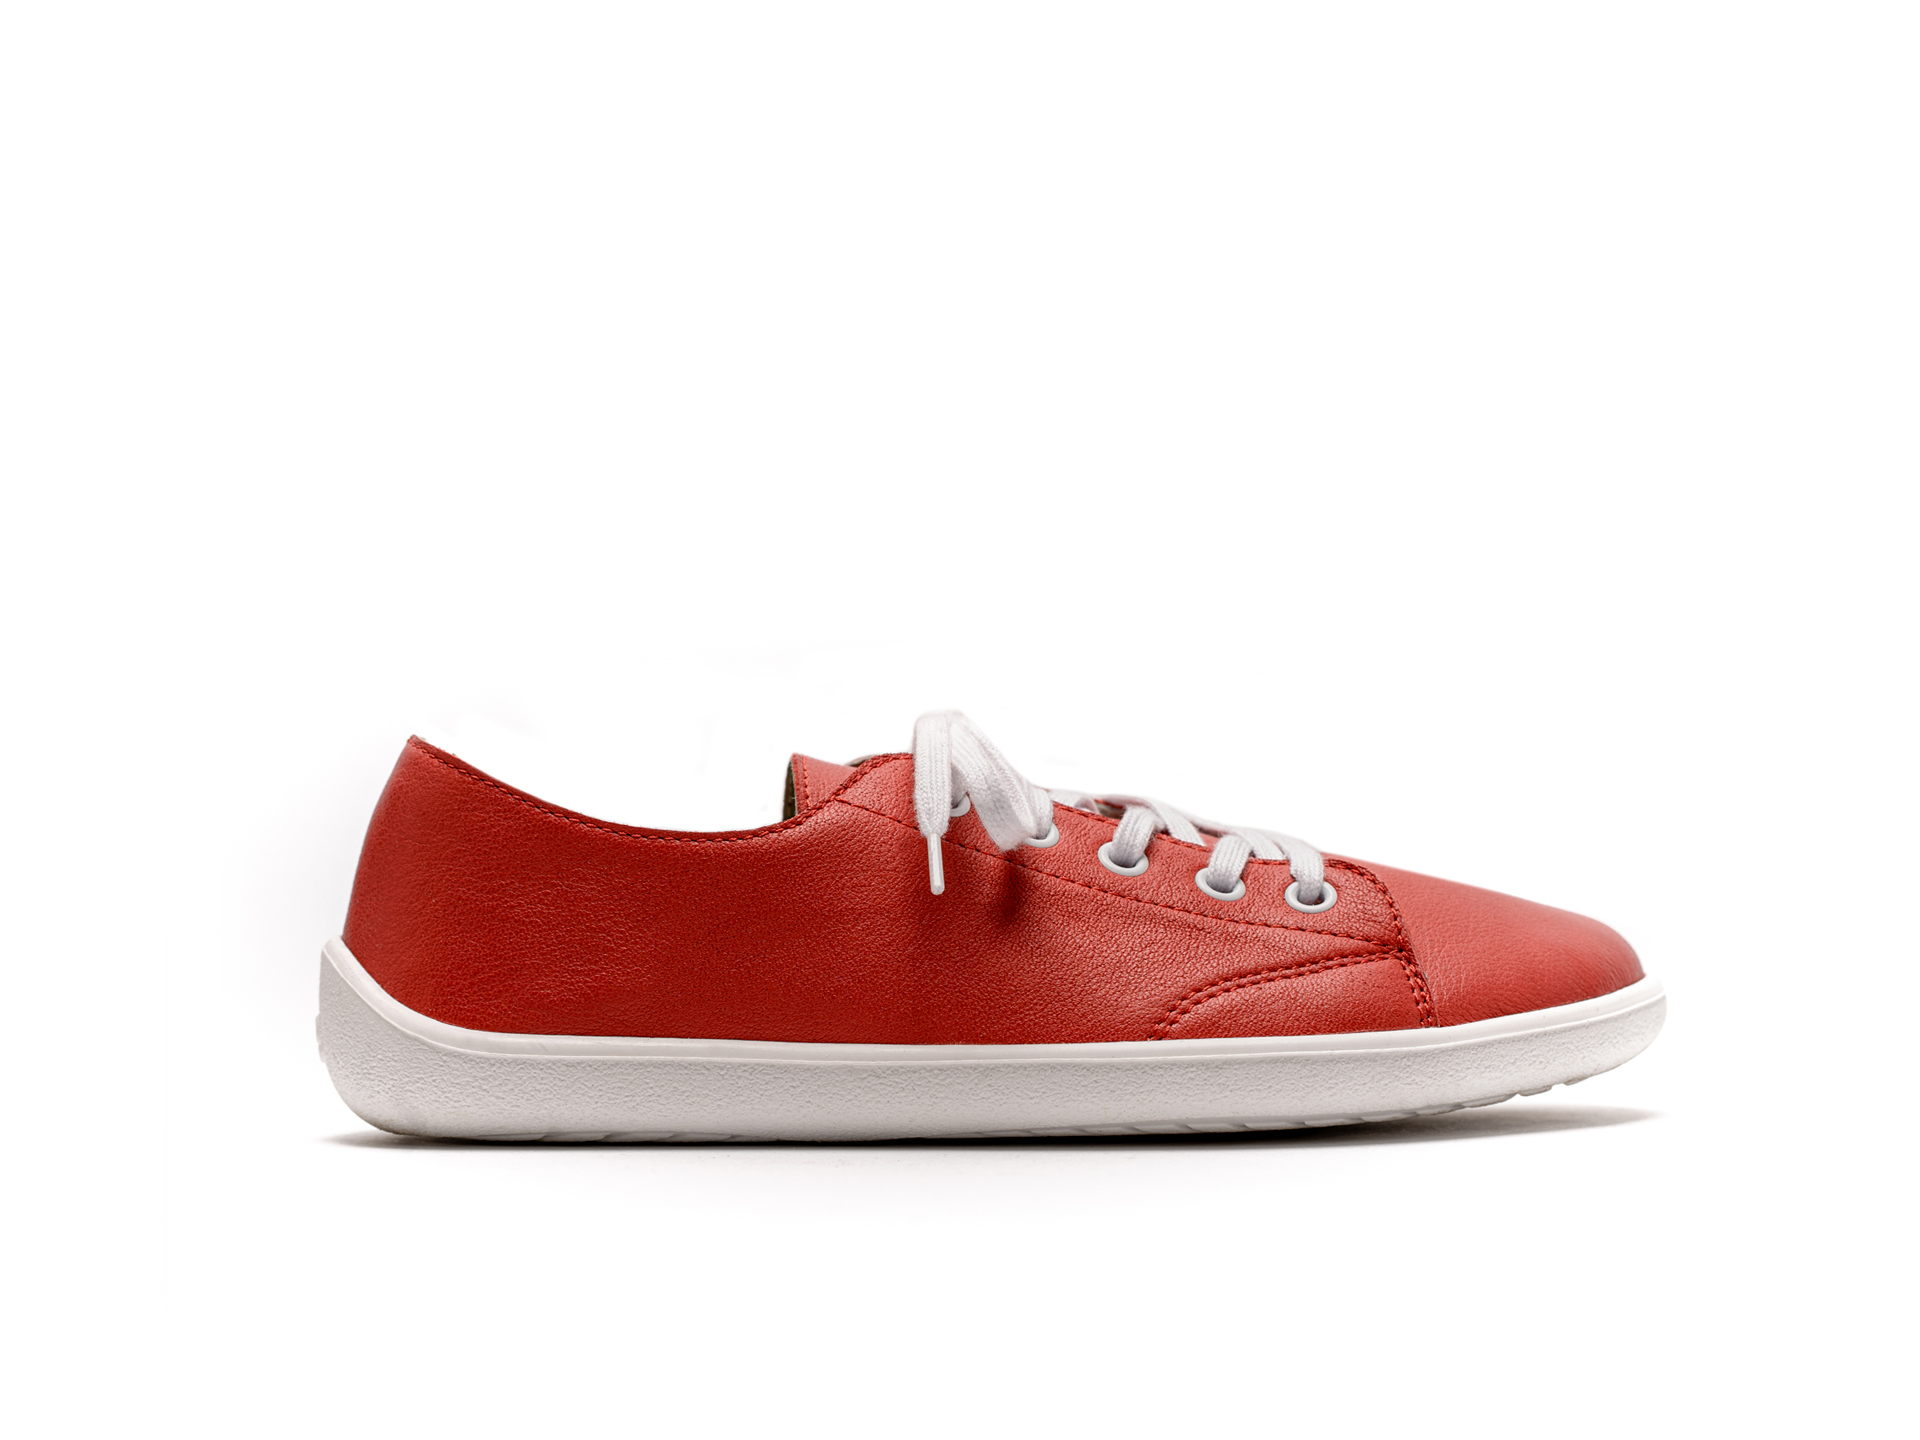 Barefoot Sneakers Be Lenka Prime - Red 36